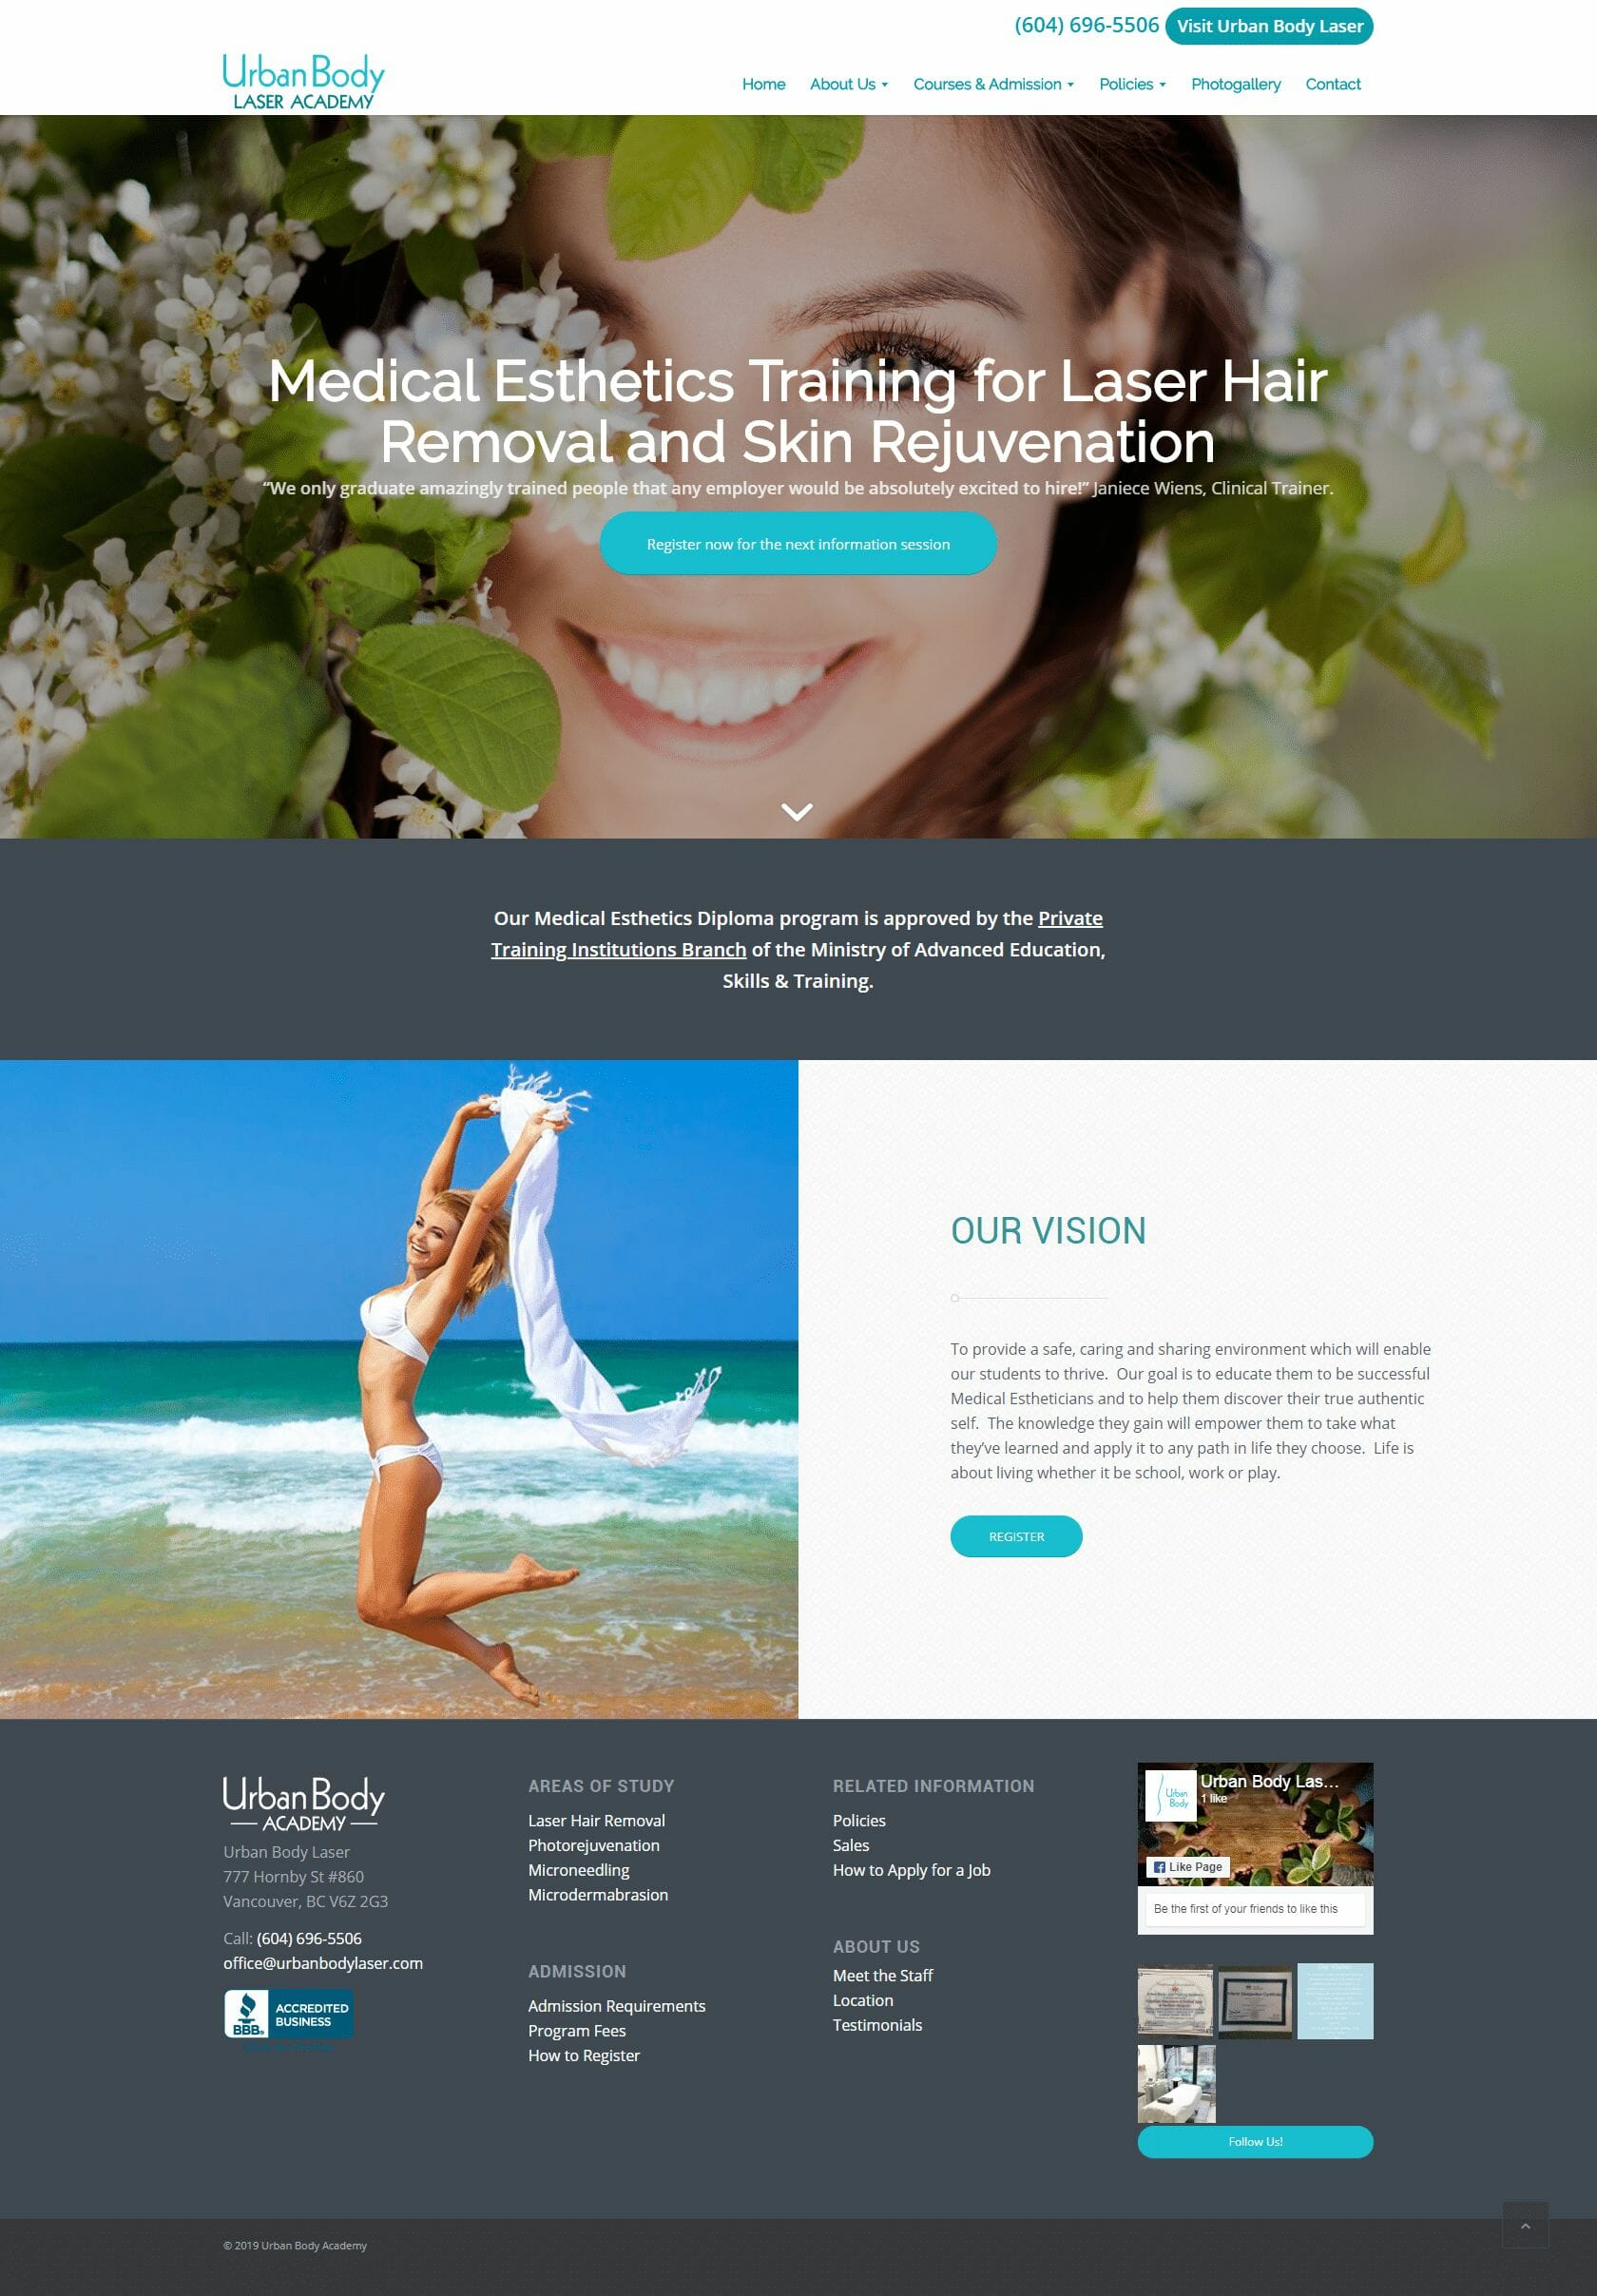 Urban Body Laser Academy HOME page layout